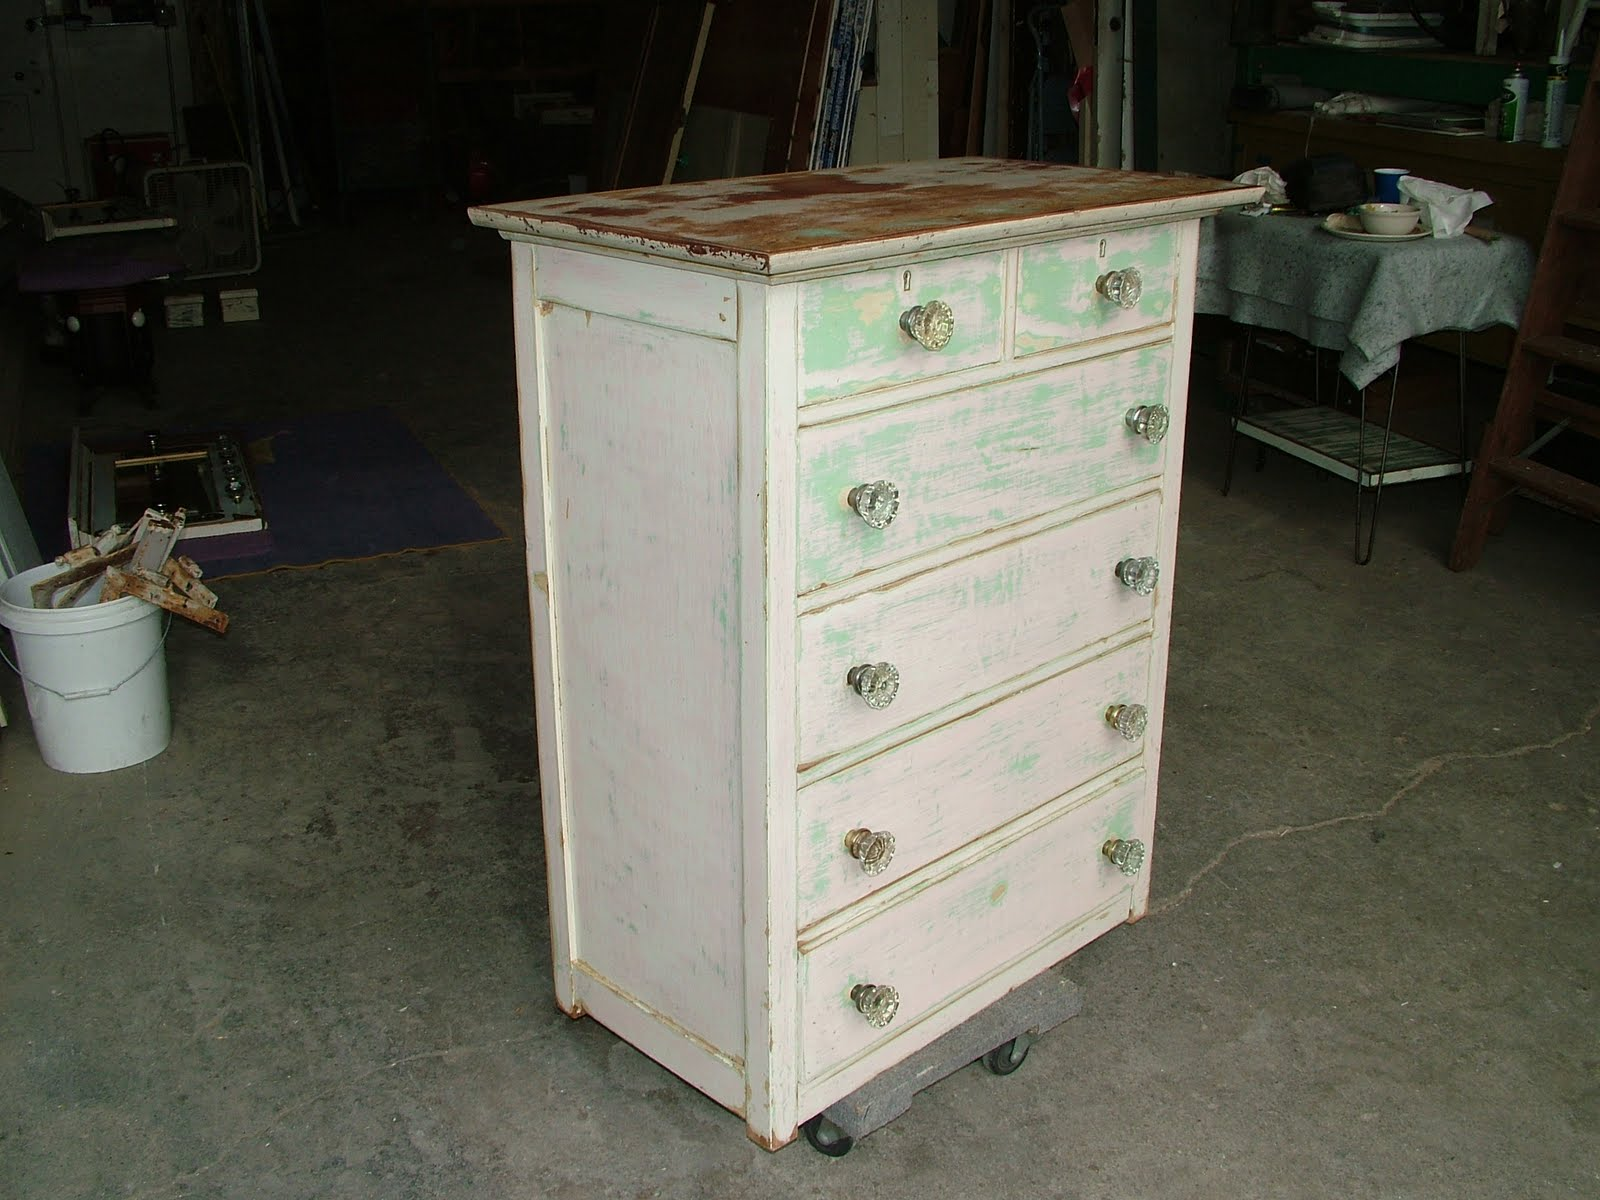 Green and White Distressed Furniture